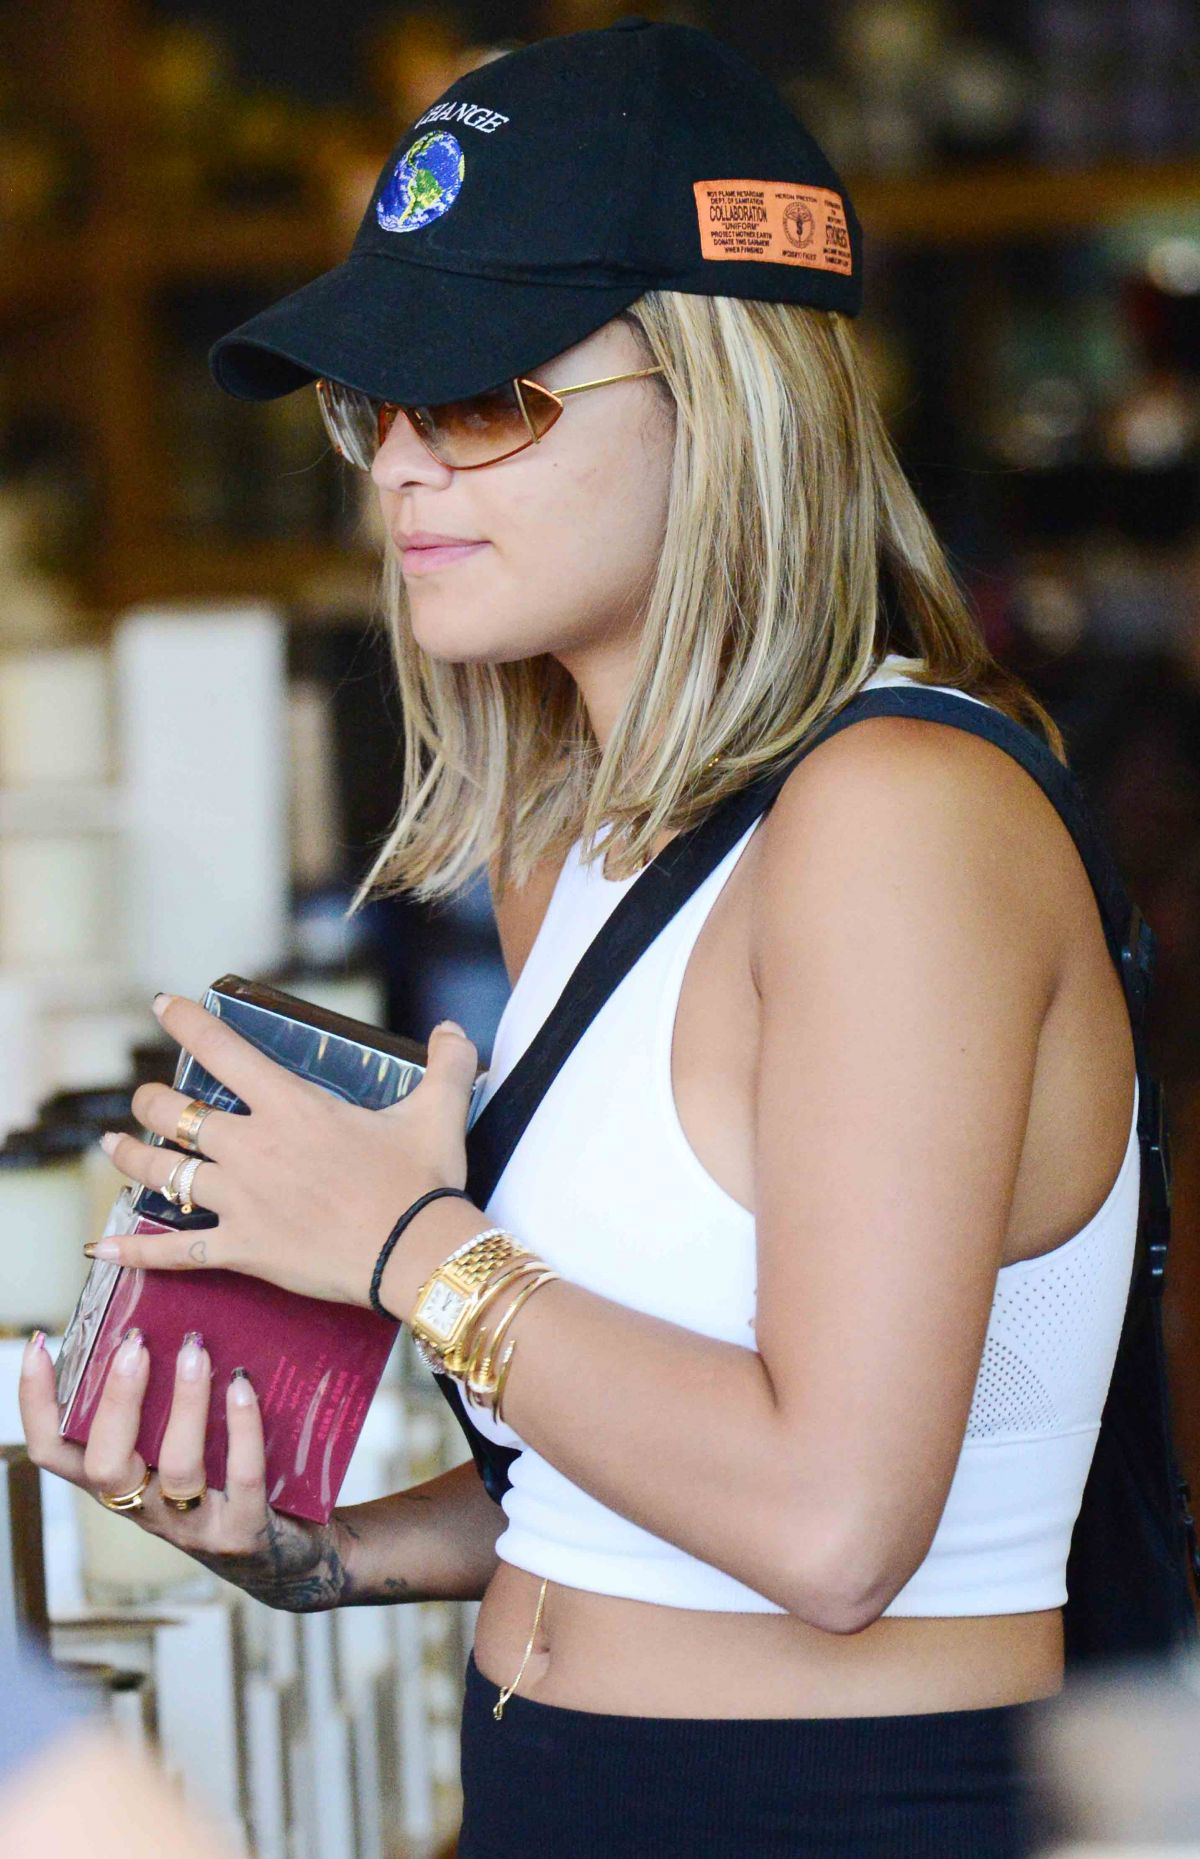 Rita Ora Shopping in West Hollywood   rita-ora-shopping-in-west-hollywood_25